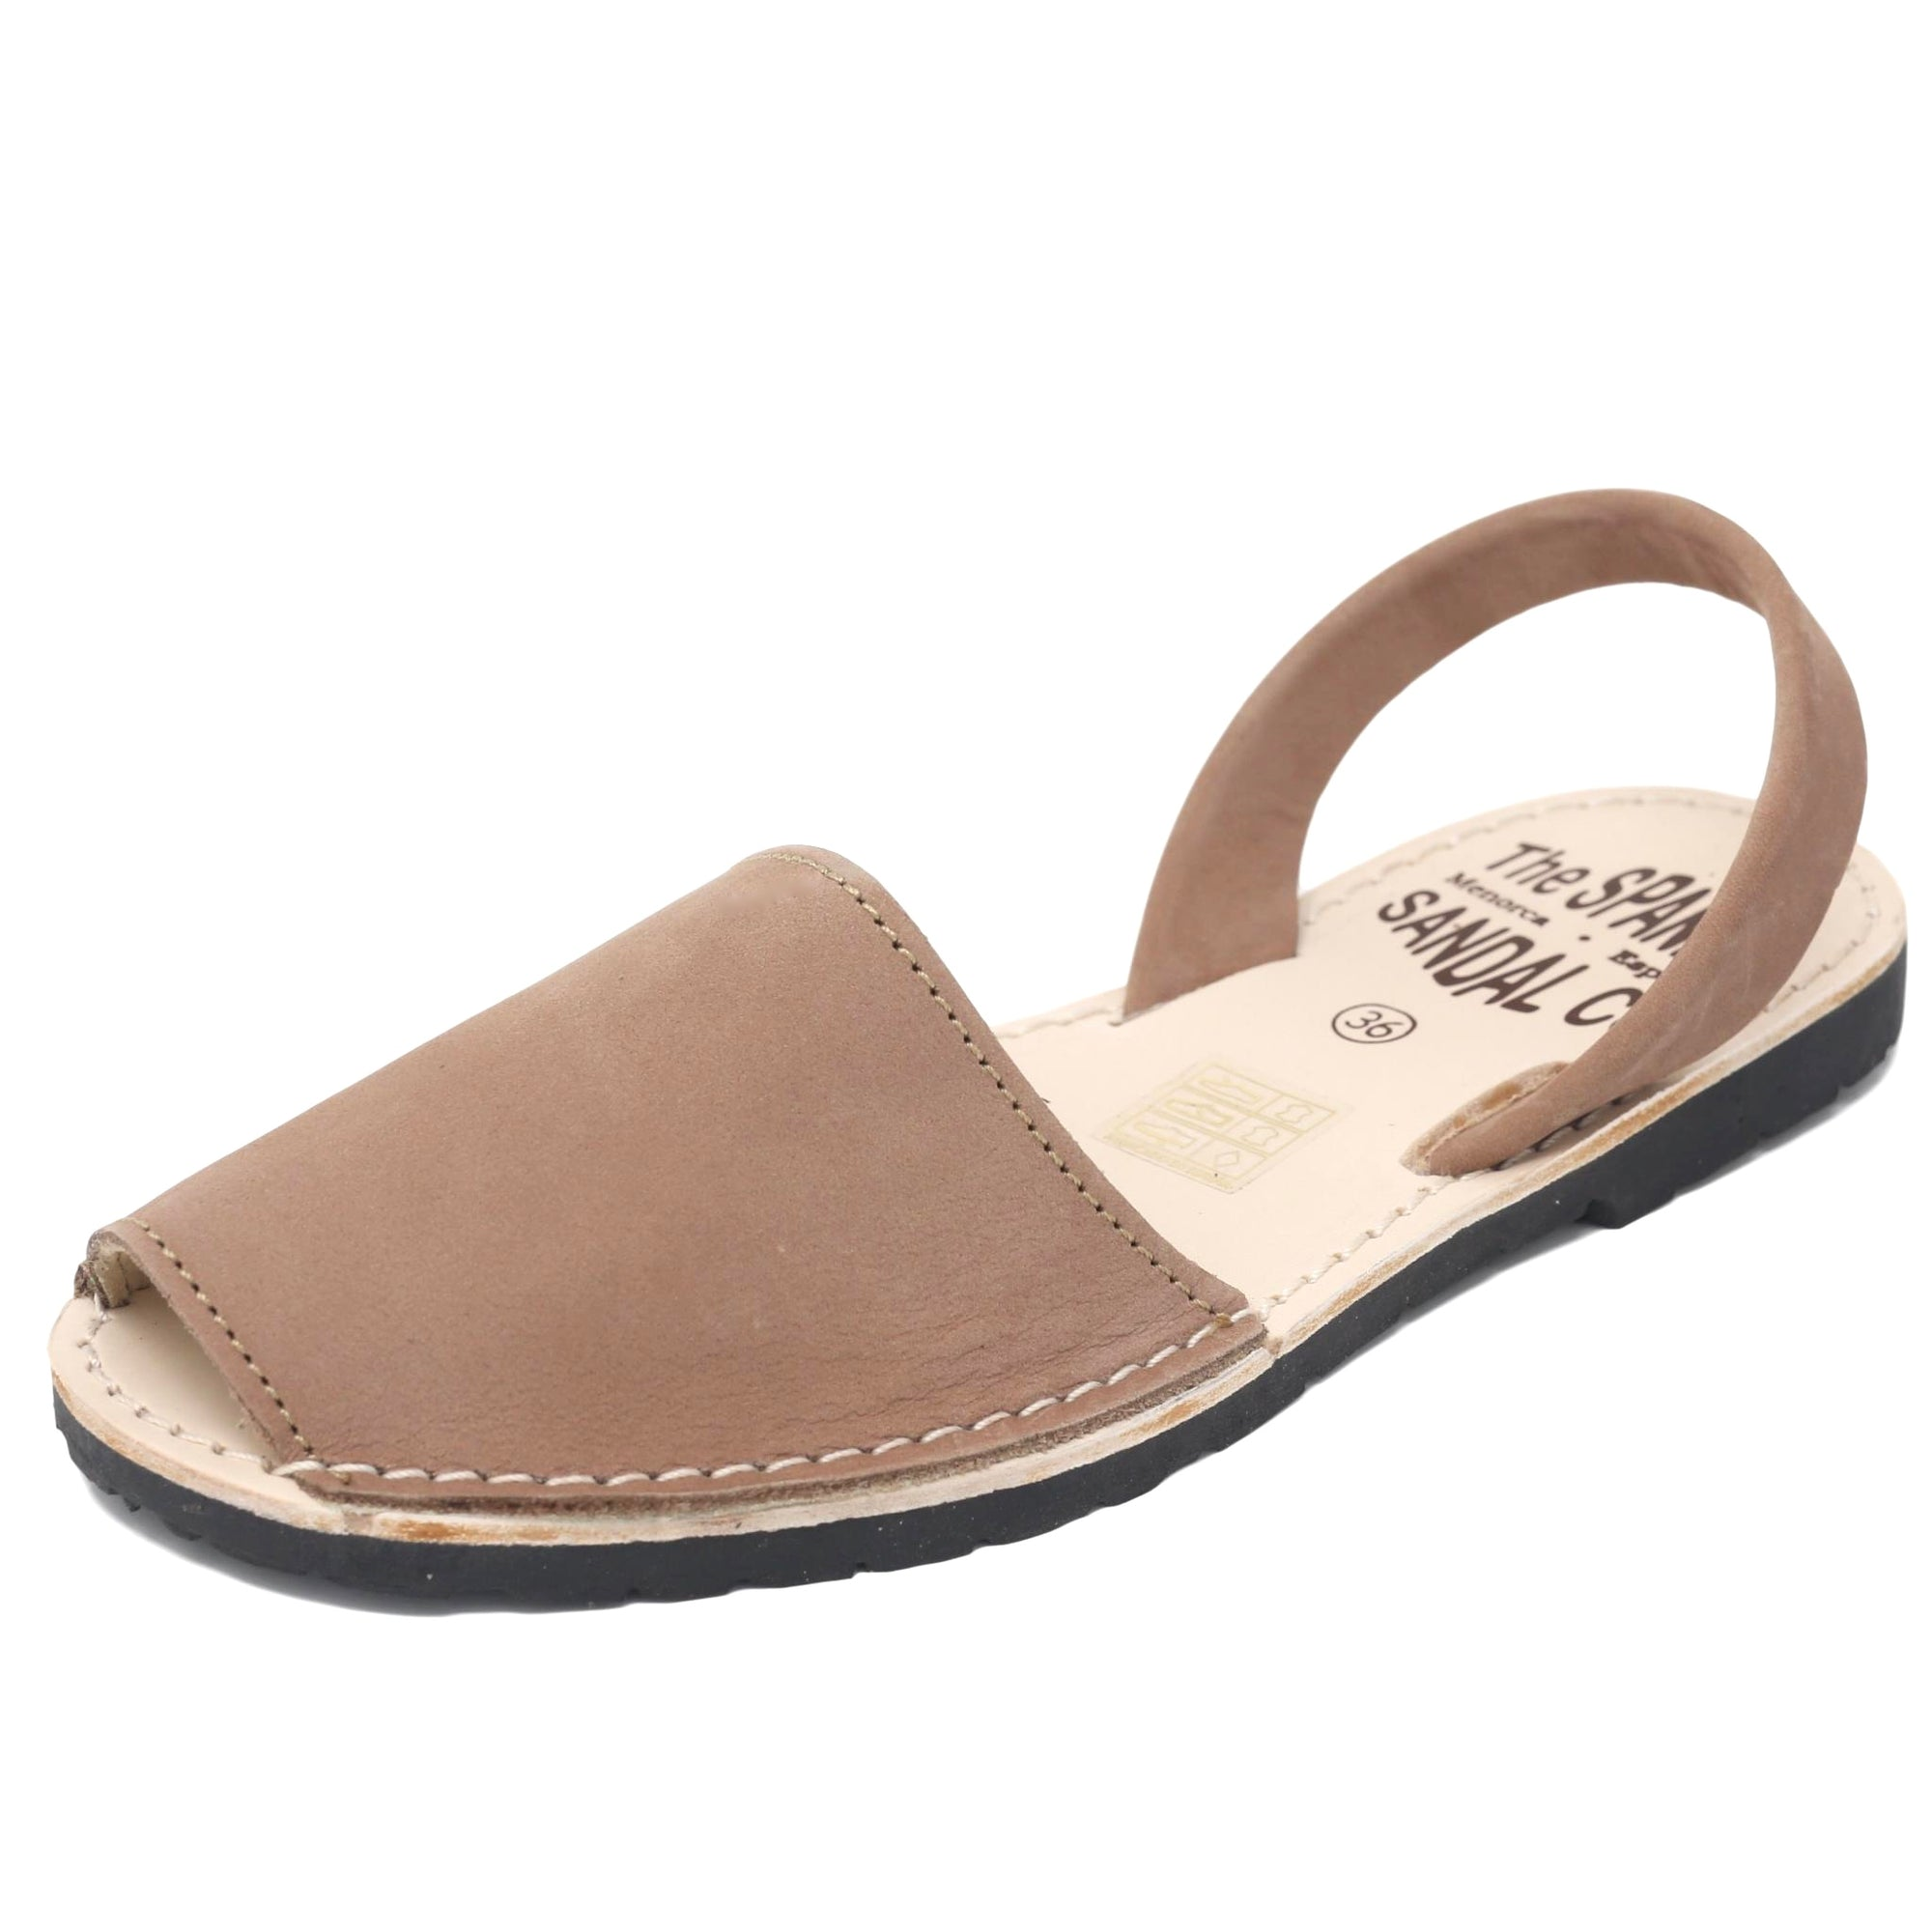 Classic tan nubuck Spanish sandals - diagonal view